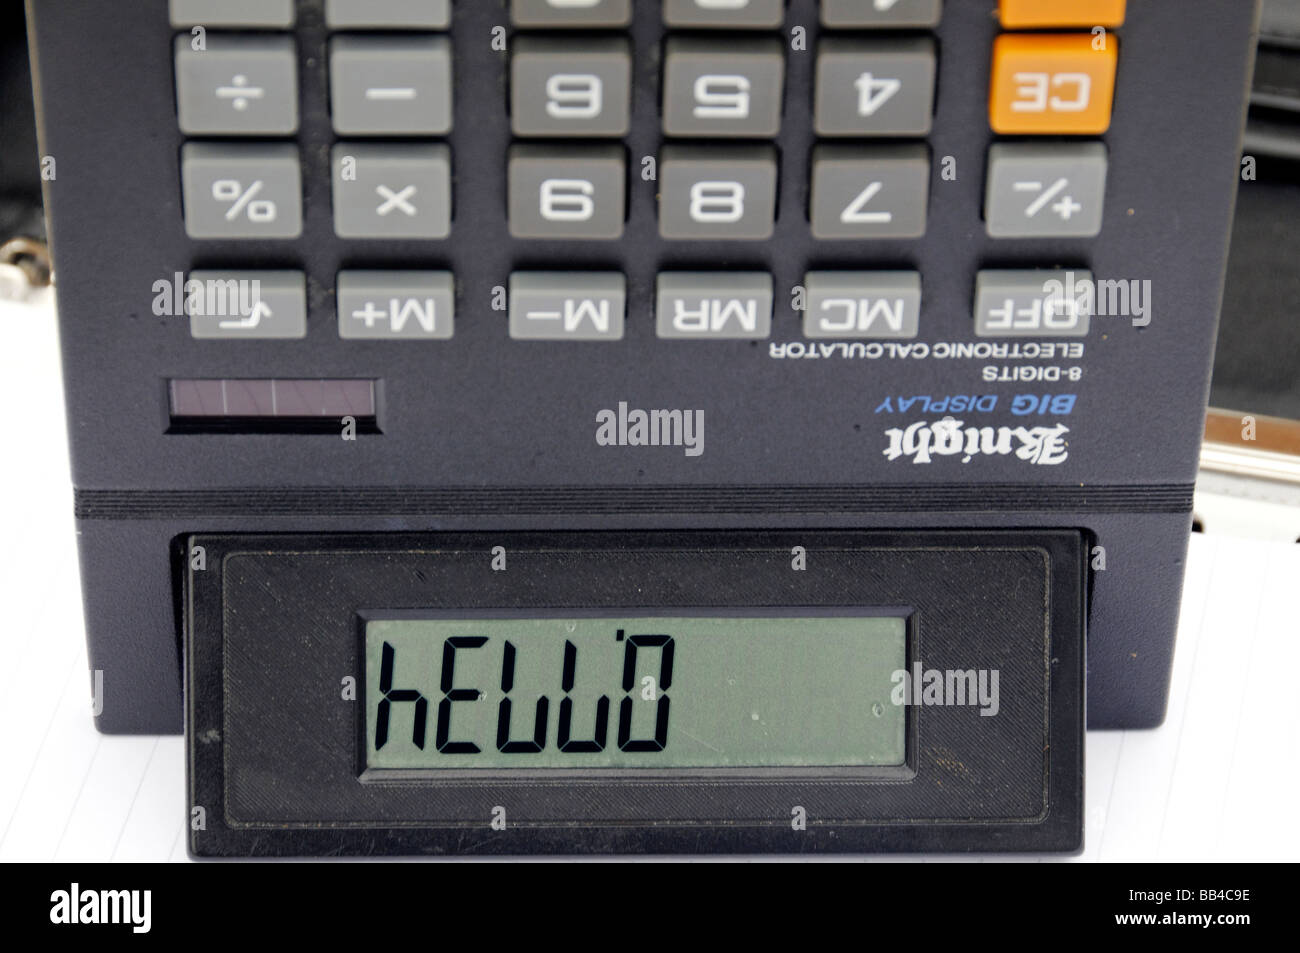 Solar powered calculator upside down showing the word hello. Stock Photo